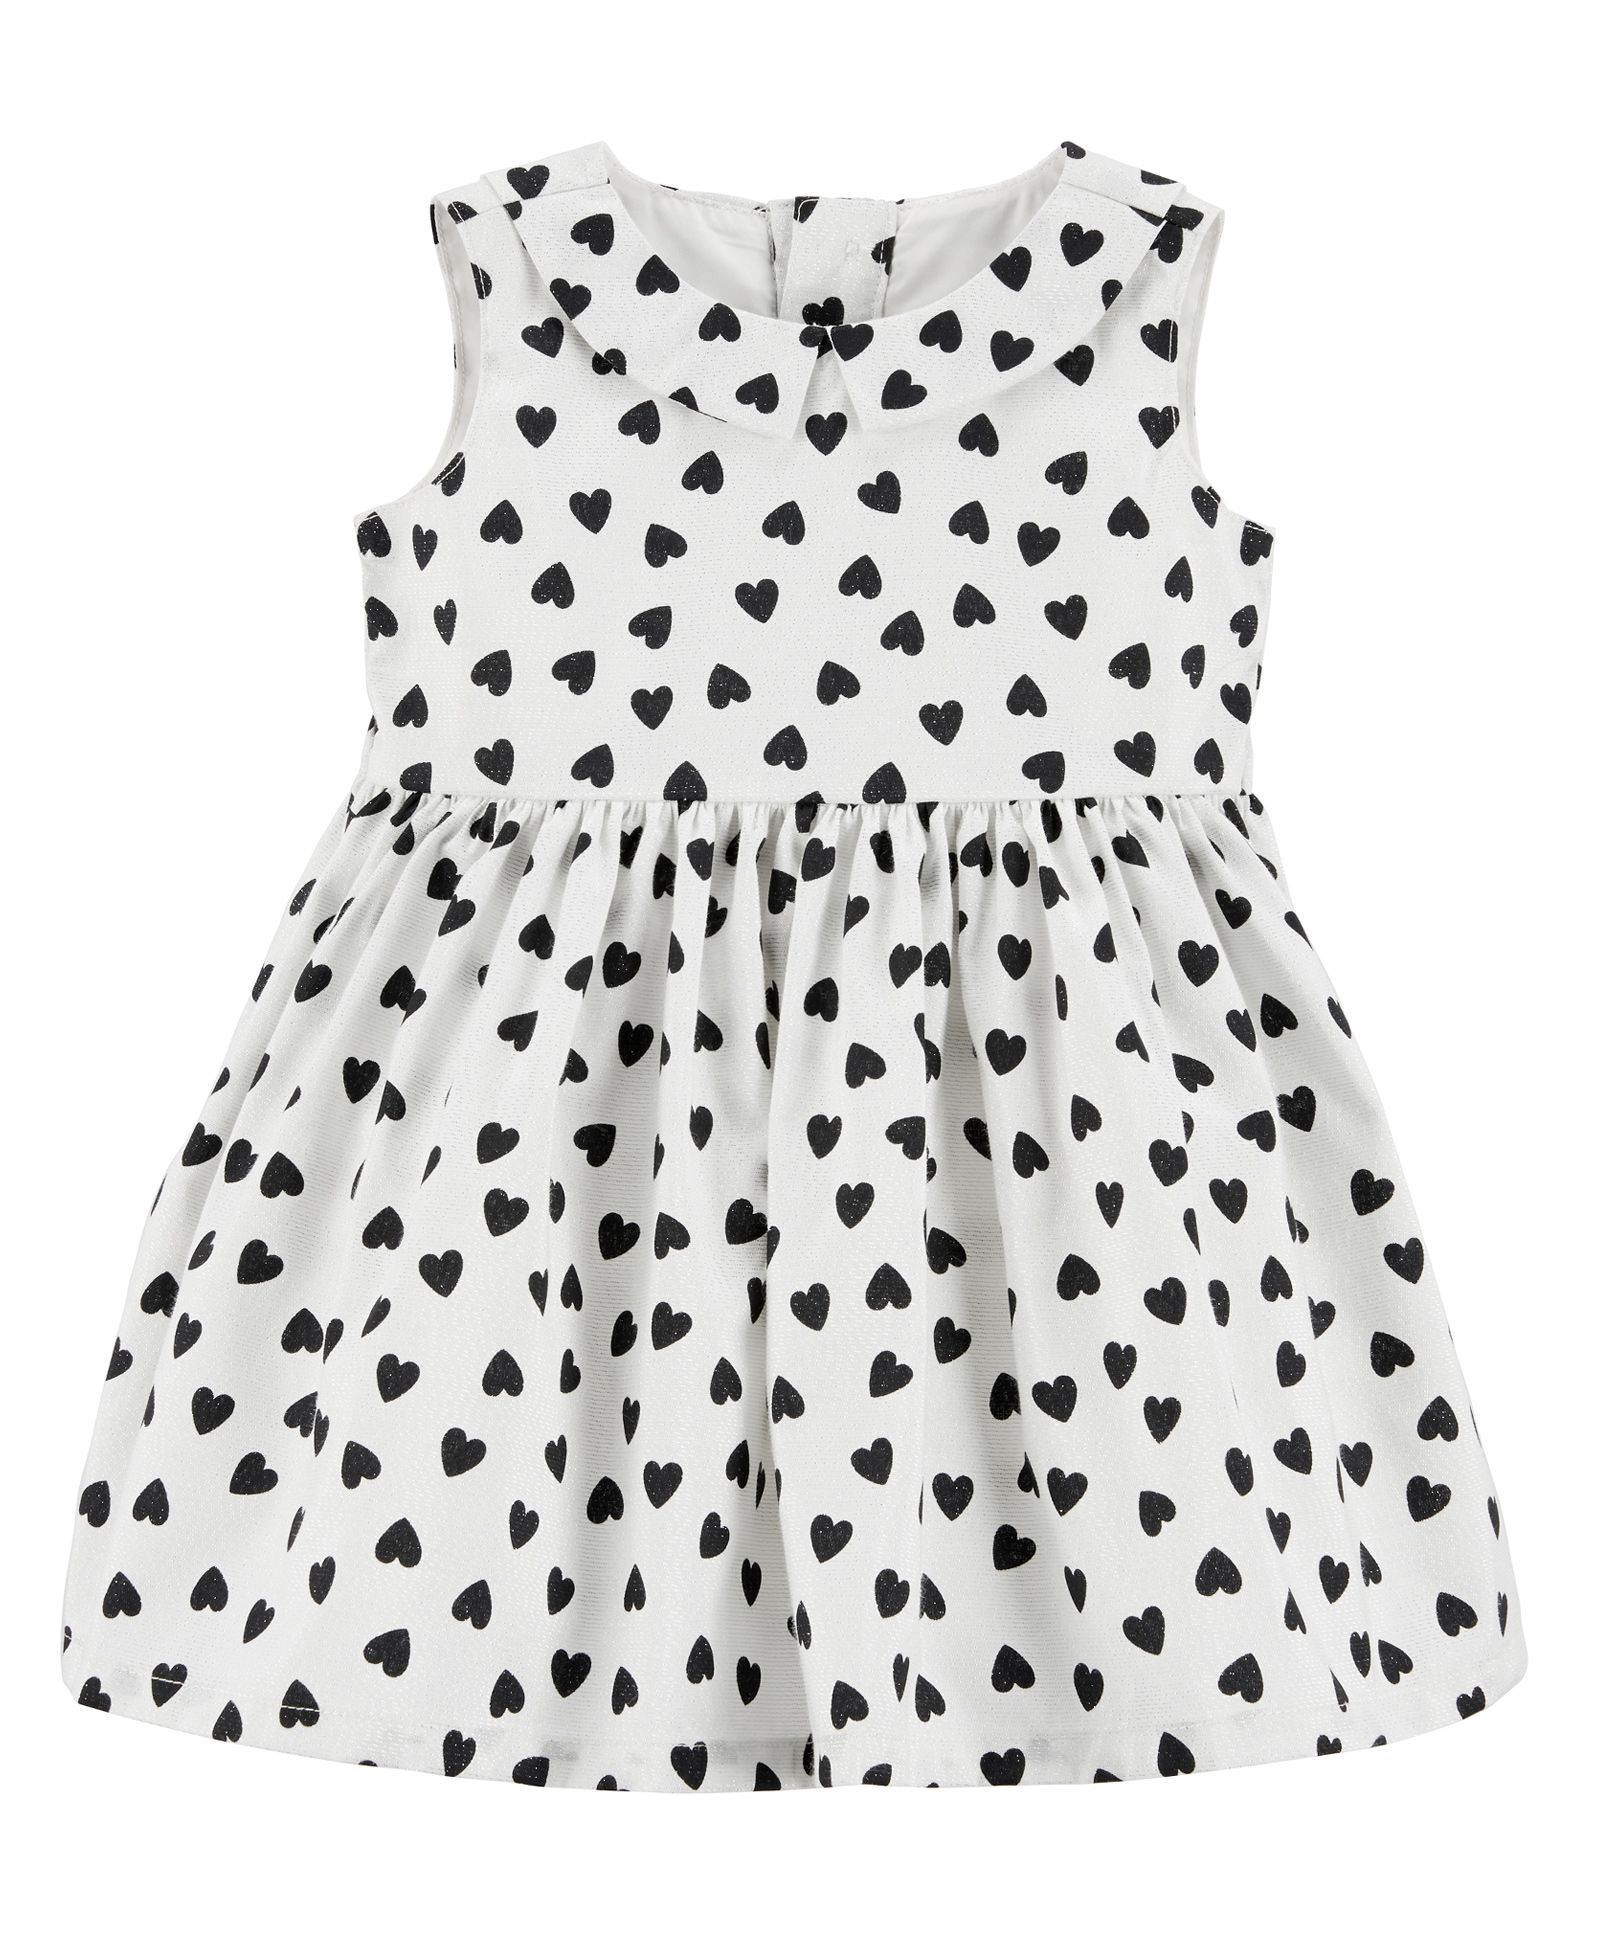 aad391254 Buy Carters Heart Bow Holiday Dress White Black for Girls (6-9 ...